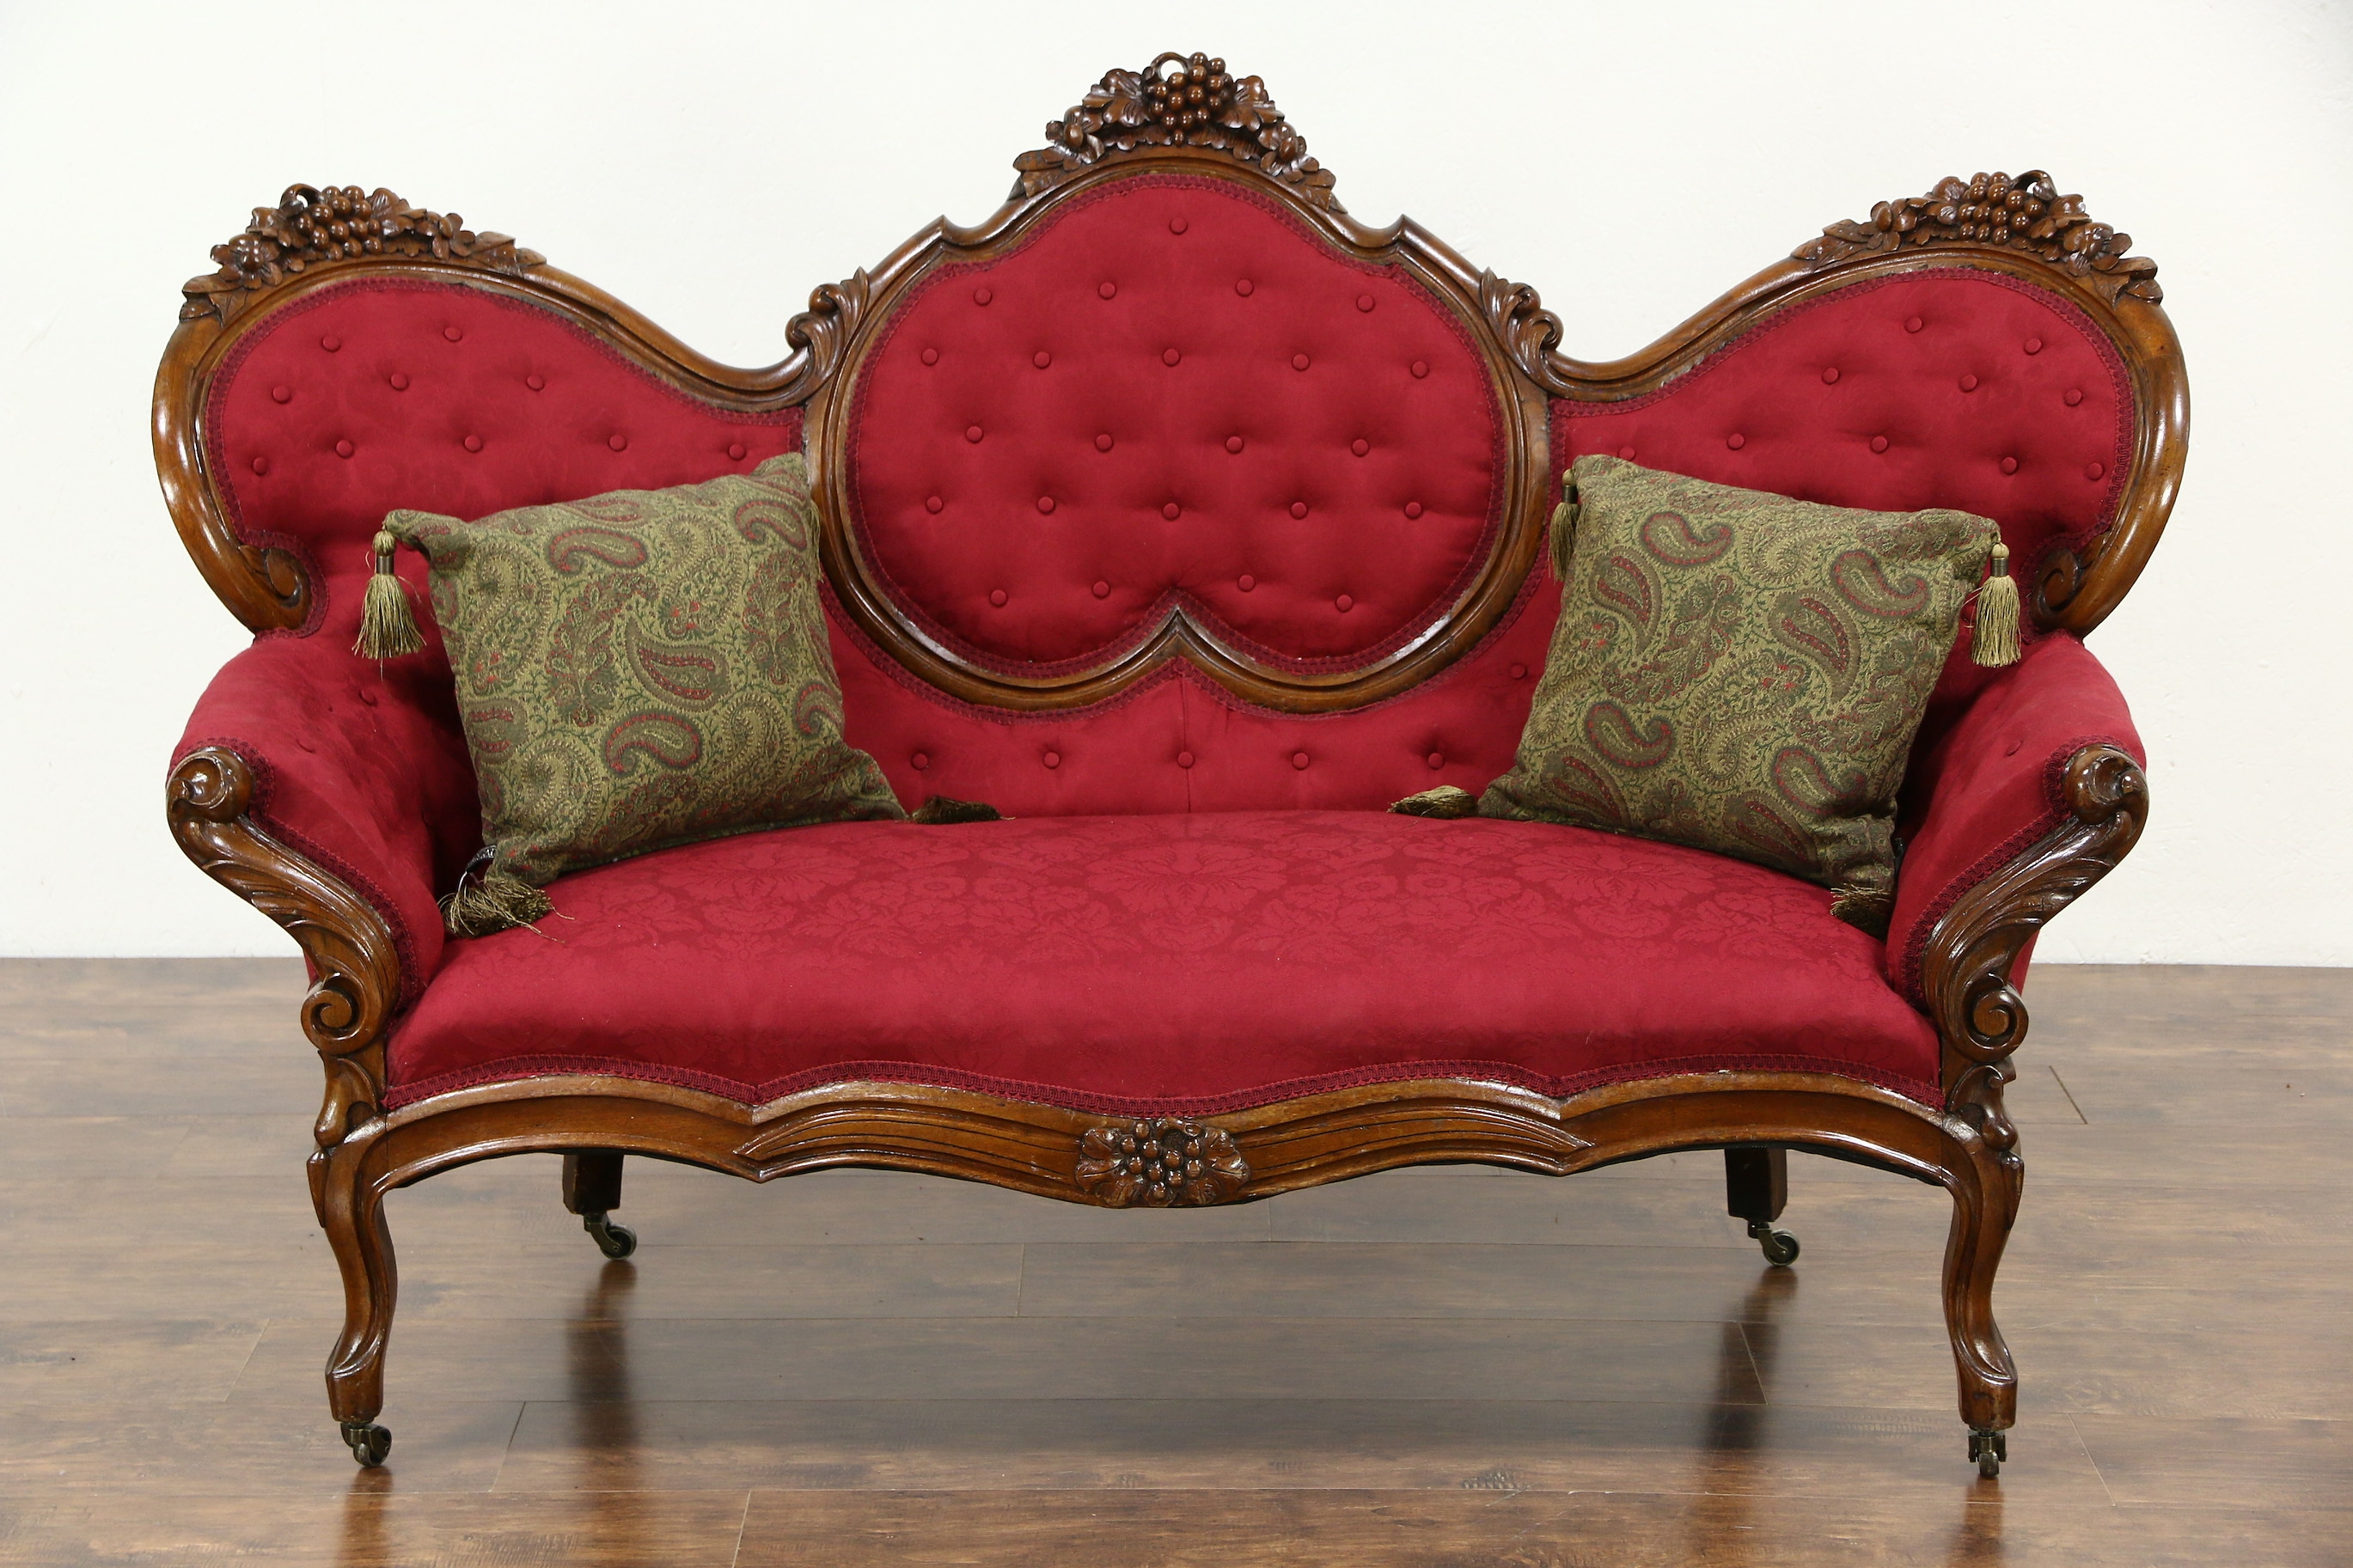 Sold Victorian 1860s Antique Grape Carved Walnut Sofa New Throughout Antique Sofa Chairs (View 8 of 15)